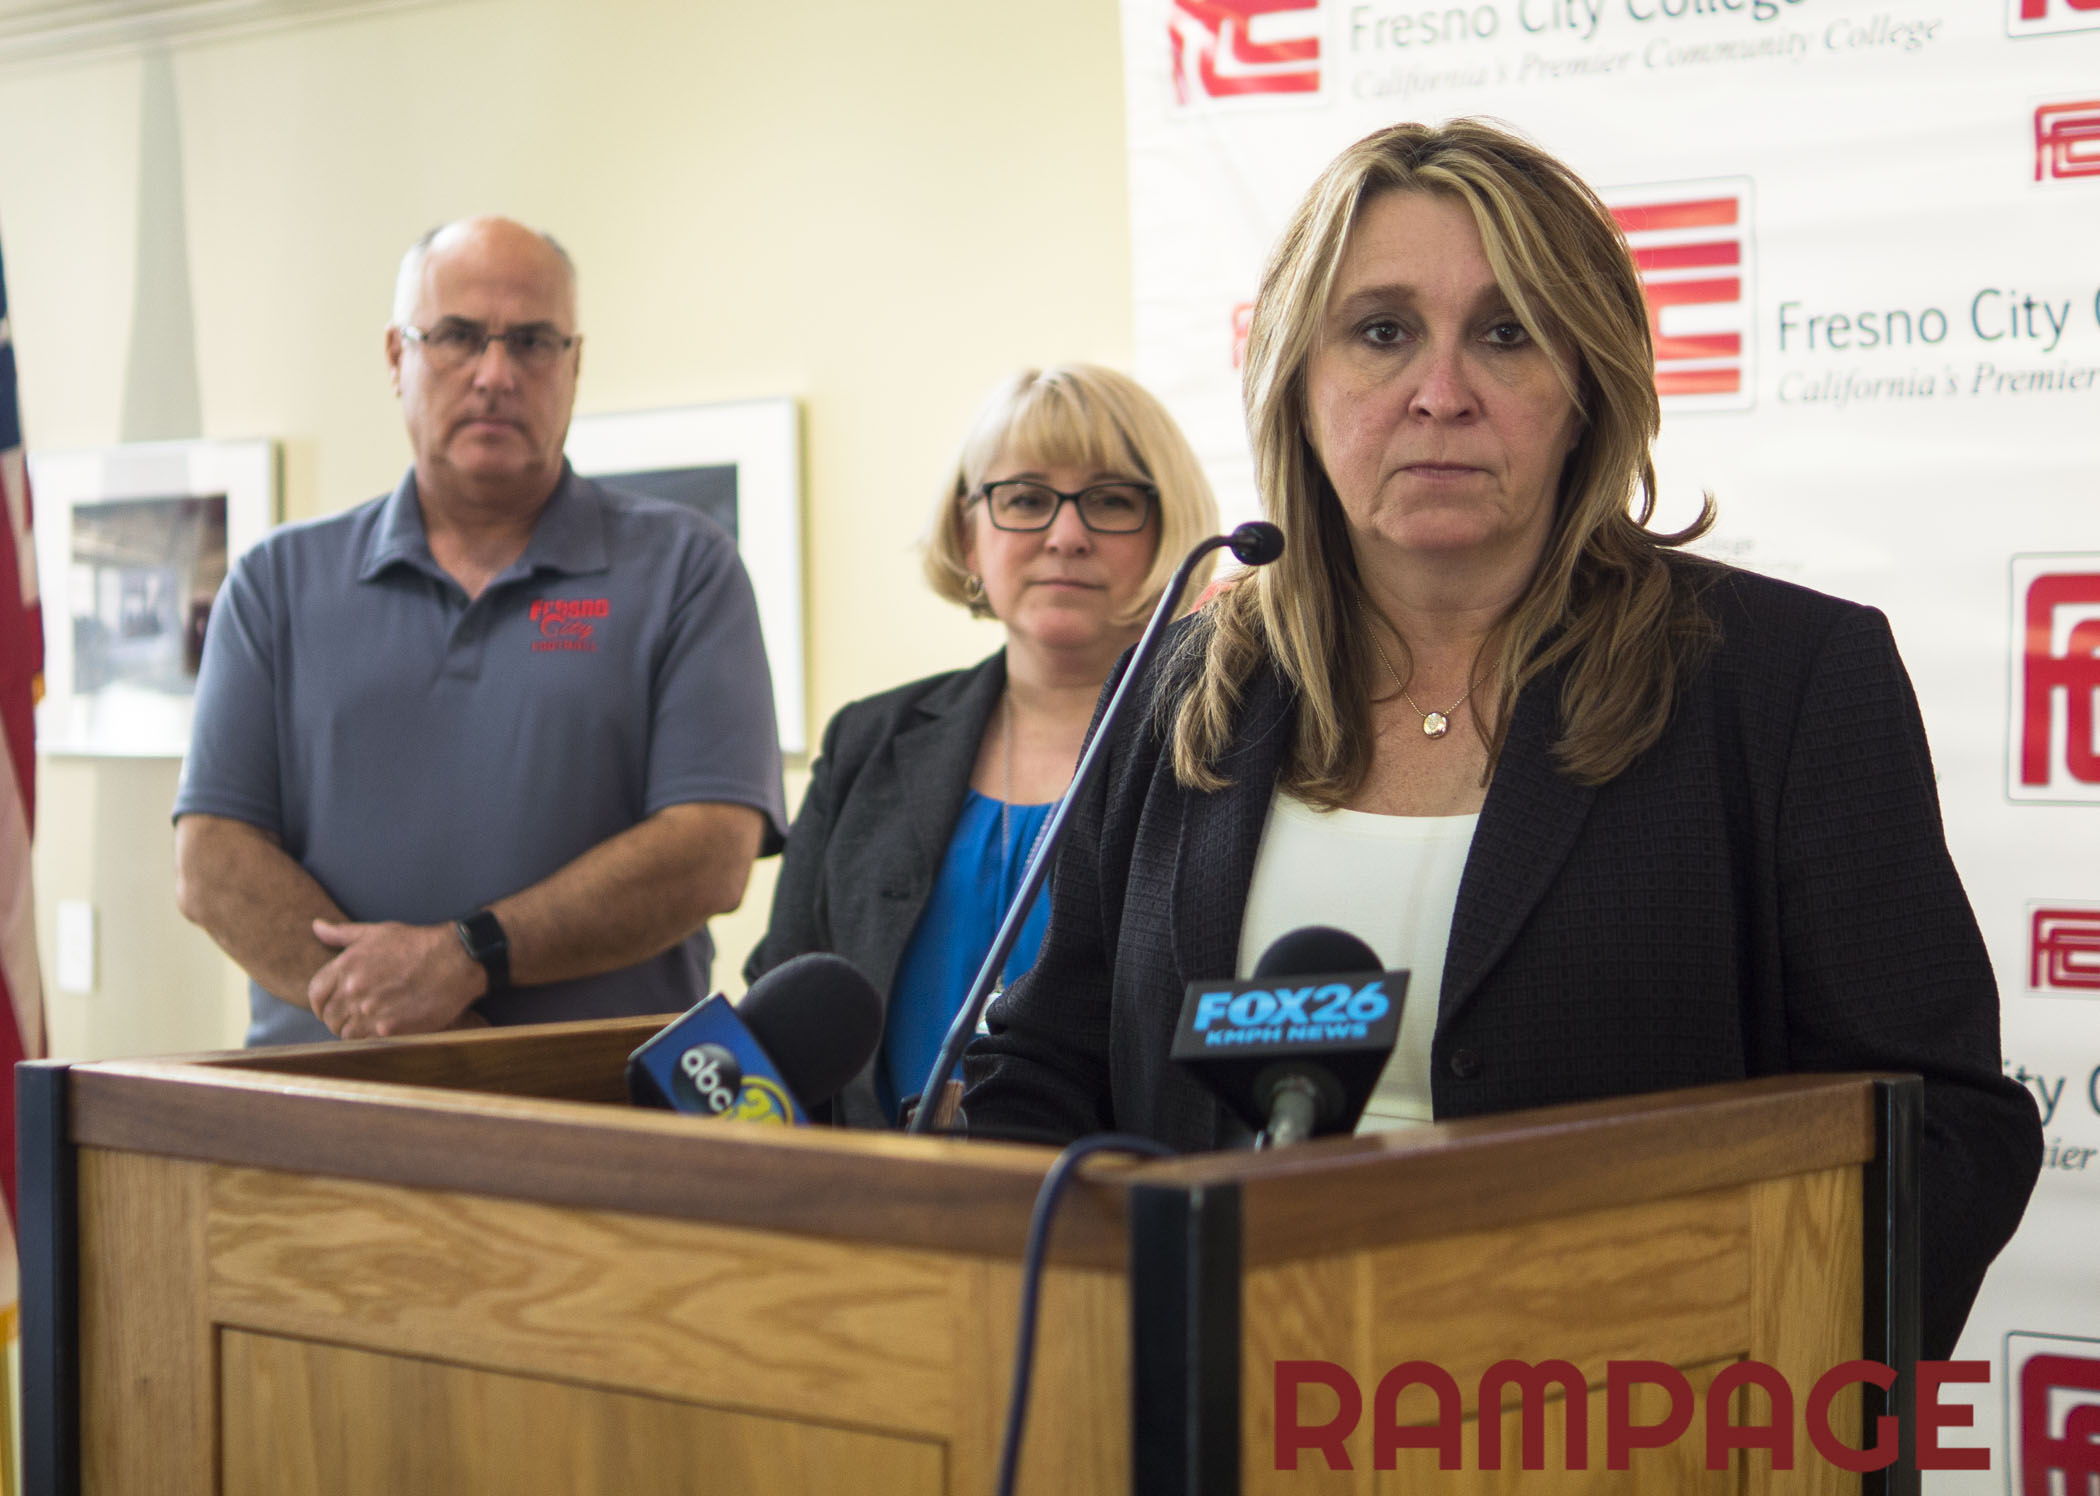 Fresno City College Rams HeadCoach Tony Caviglia, VP of administriative services Cheryl Sullivan and FCC President Carole Goldsmith listens to a question about further punishments for the FCC football team during the press conference on Monday, Nov. 14, 2016.